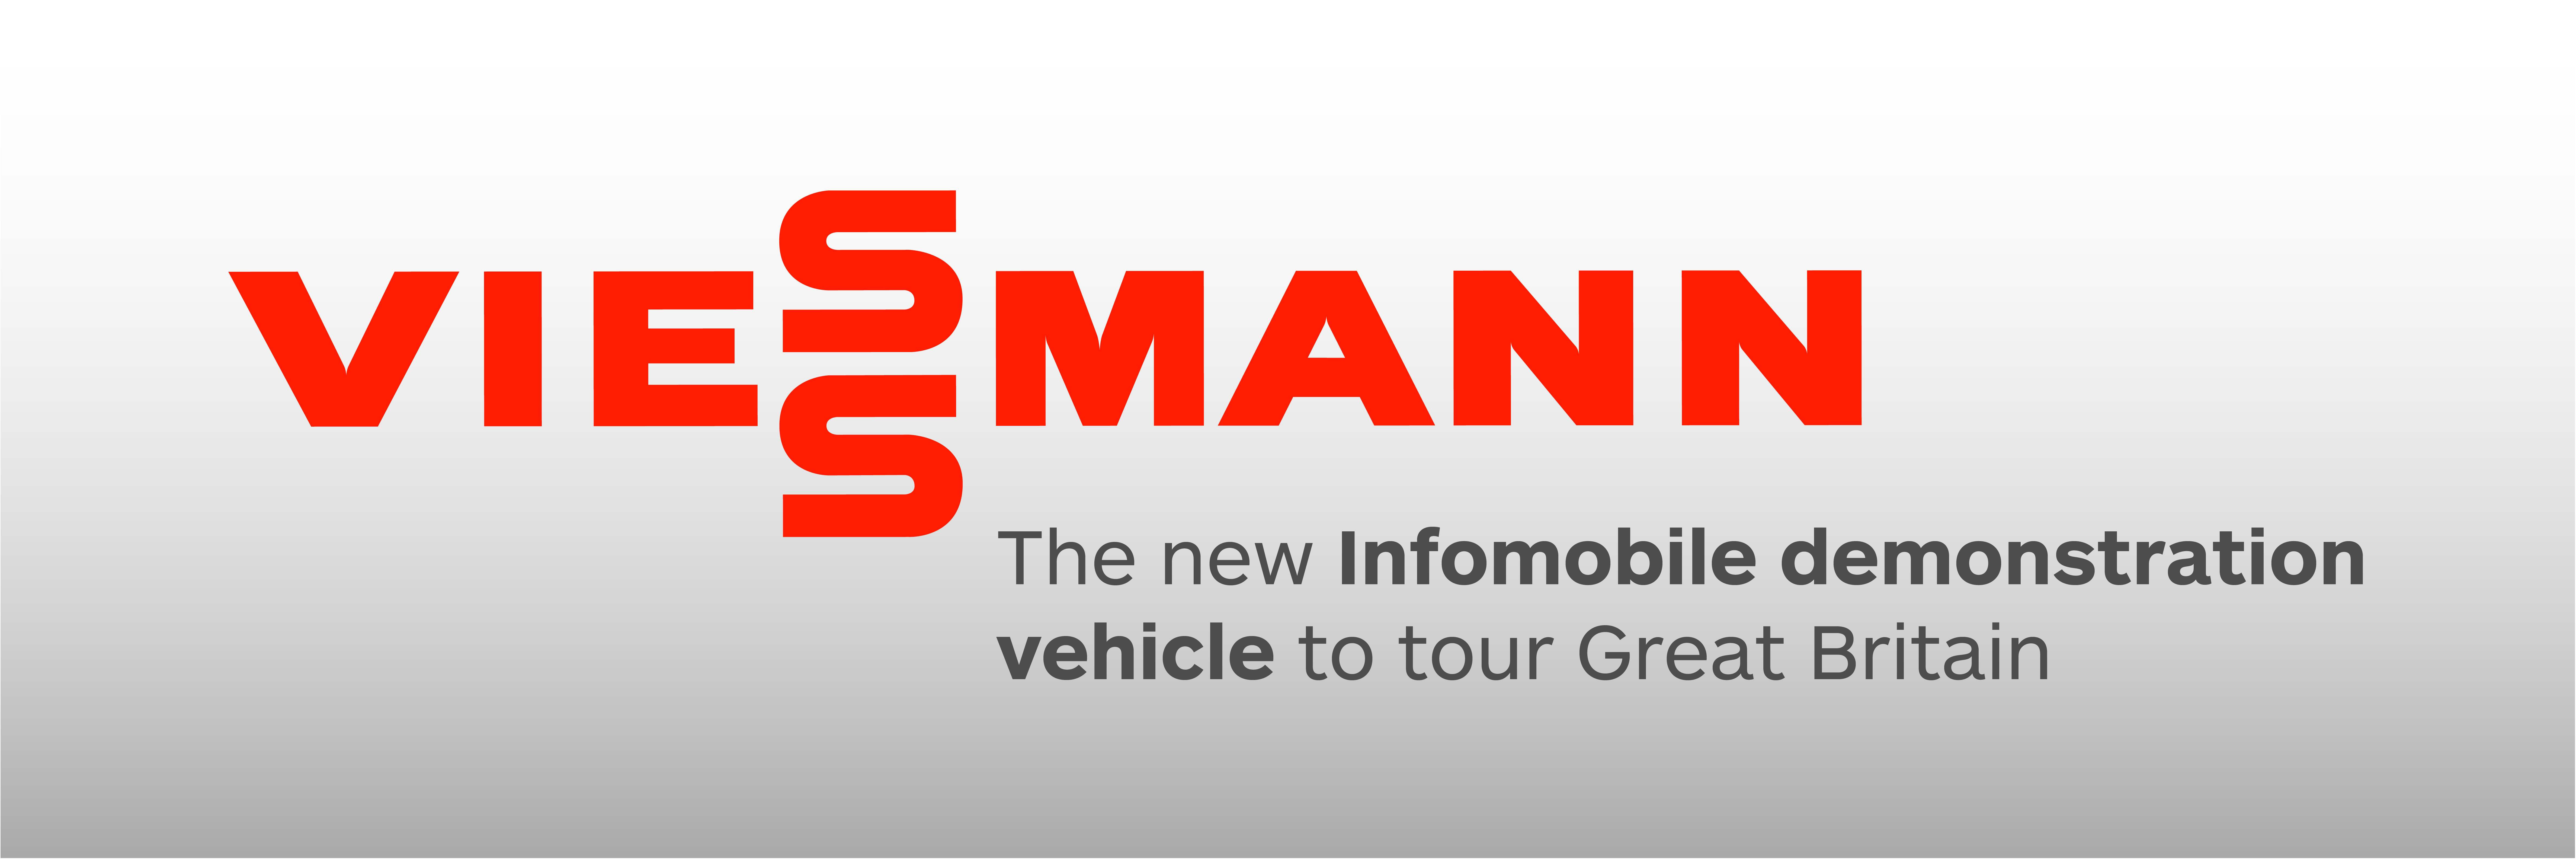 Viessmann infomobile demonstration vehicle to tour Great Britain